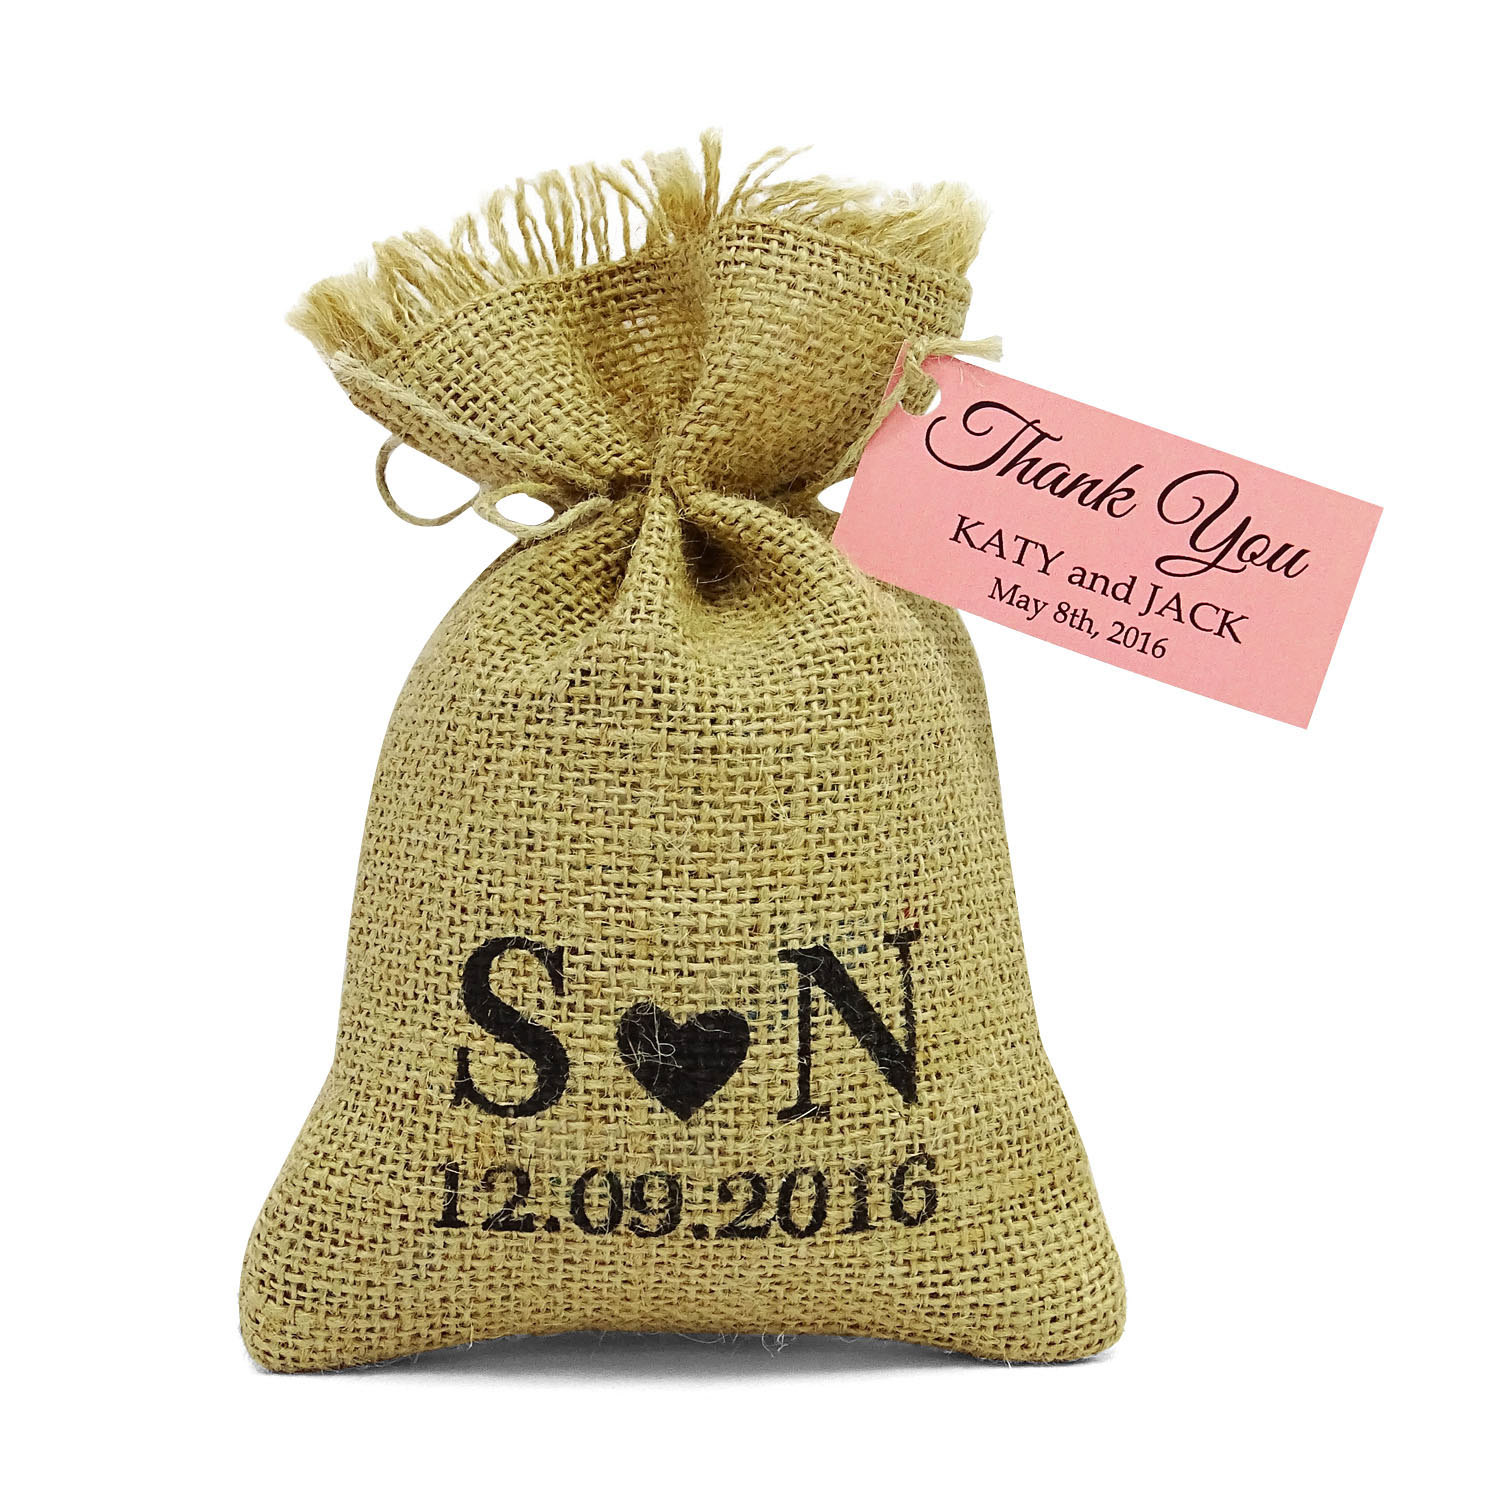 Charming wedding jute drawstring pouch bag with custom tags